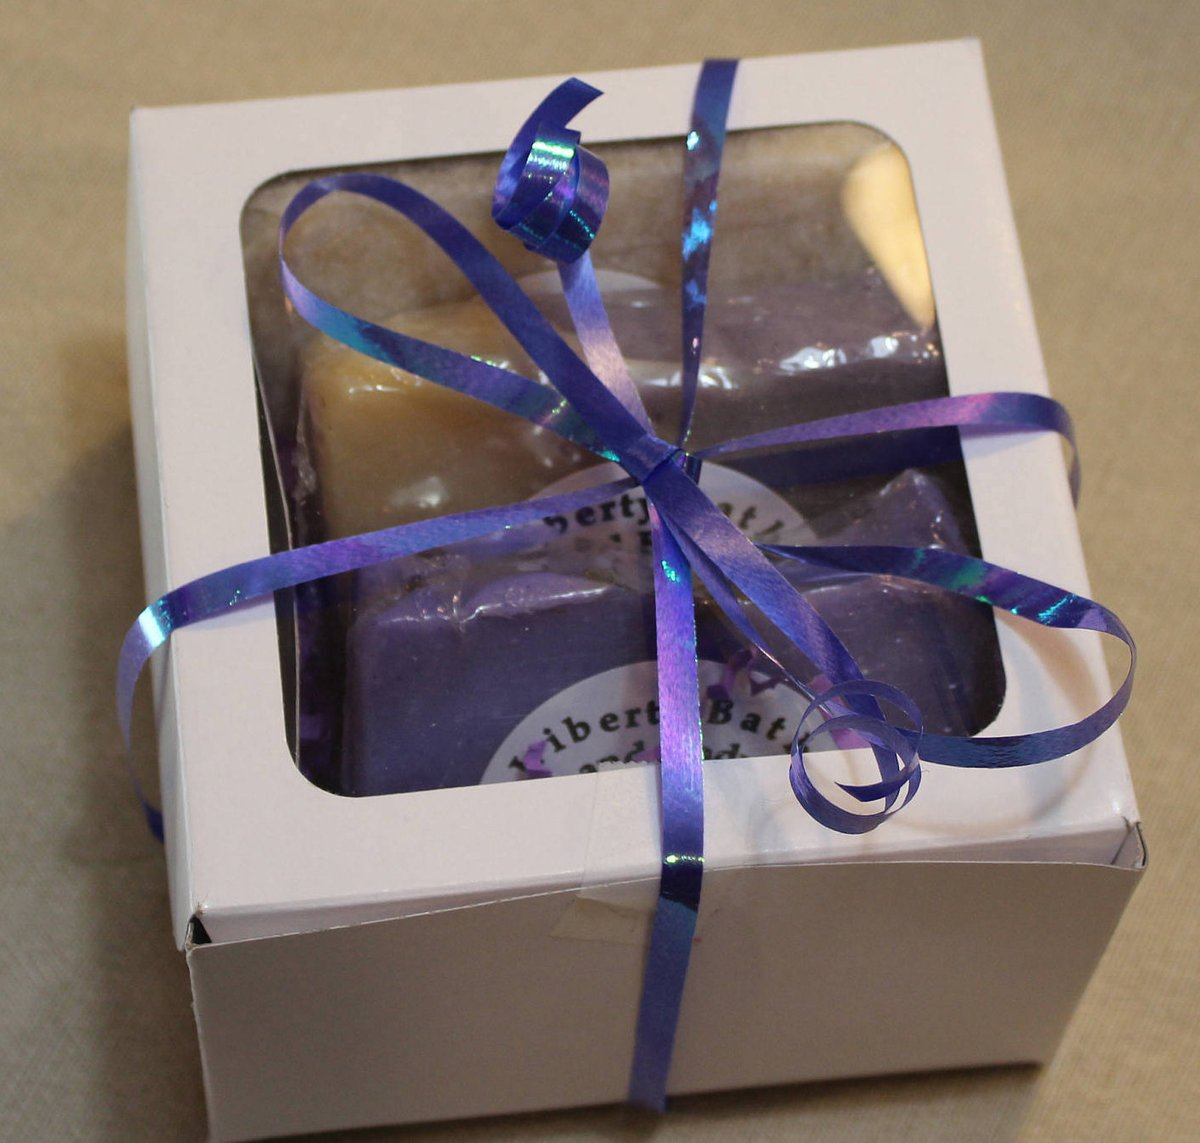 Floral Soap Gift Box Handcrafted Lilac Soap, Lavender Bar Soap, Oatmeal Honey Soap, Gifts Under 15, Mother's Day Gift, Birthday Gift http://tuppu.net/ac4de2d8 #facialcare #allnatural #skincare #ecofriendly #Mensgrooming ##WashYourHands #LilacSoappic.twitter.com/TRVZeGDldJ